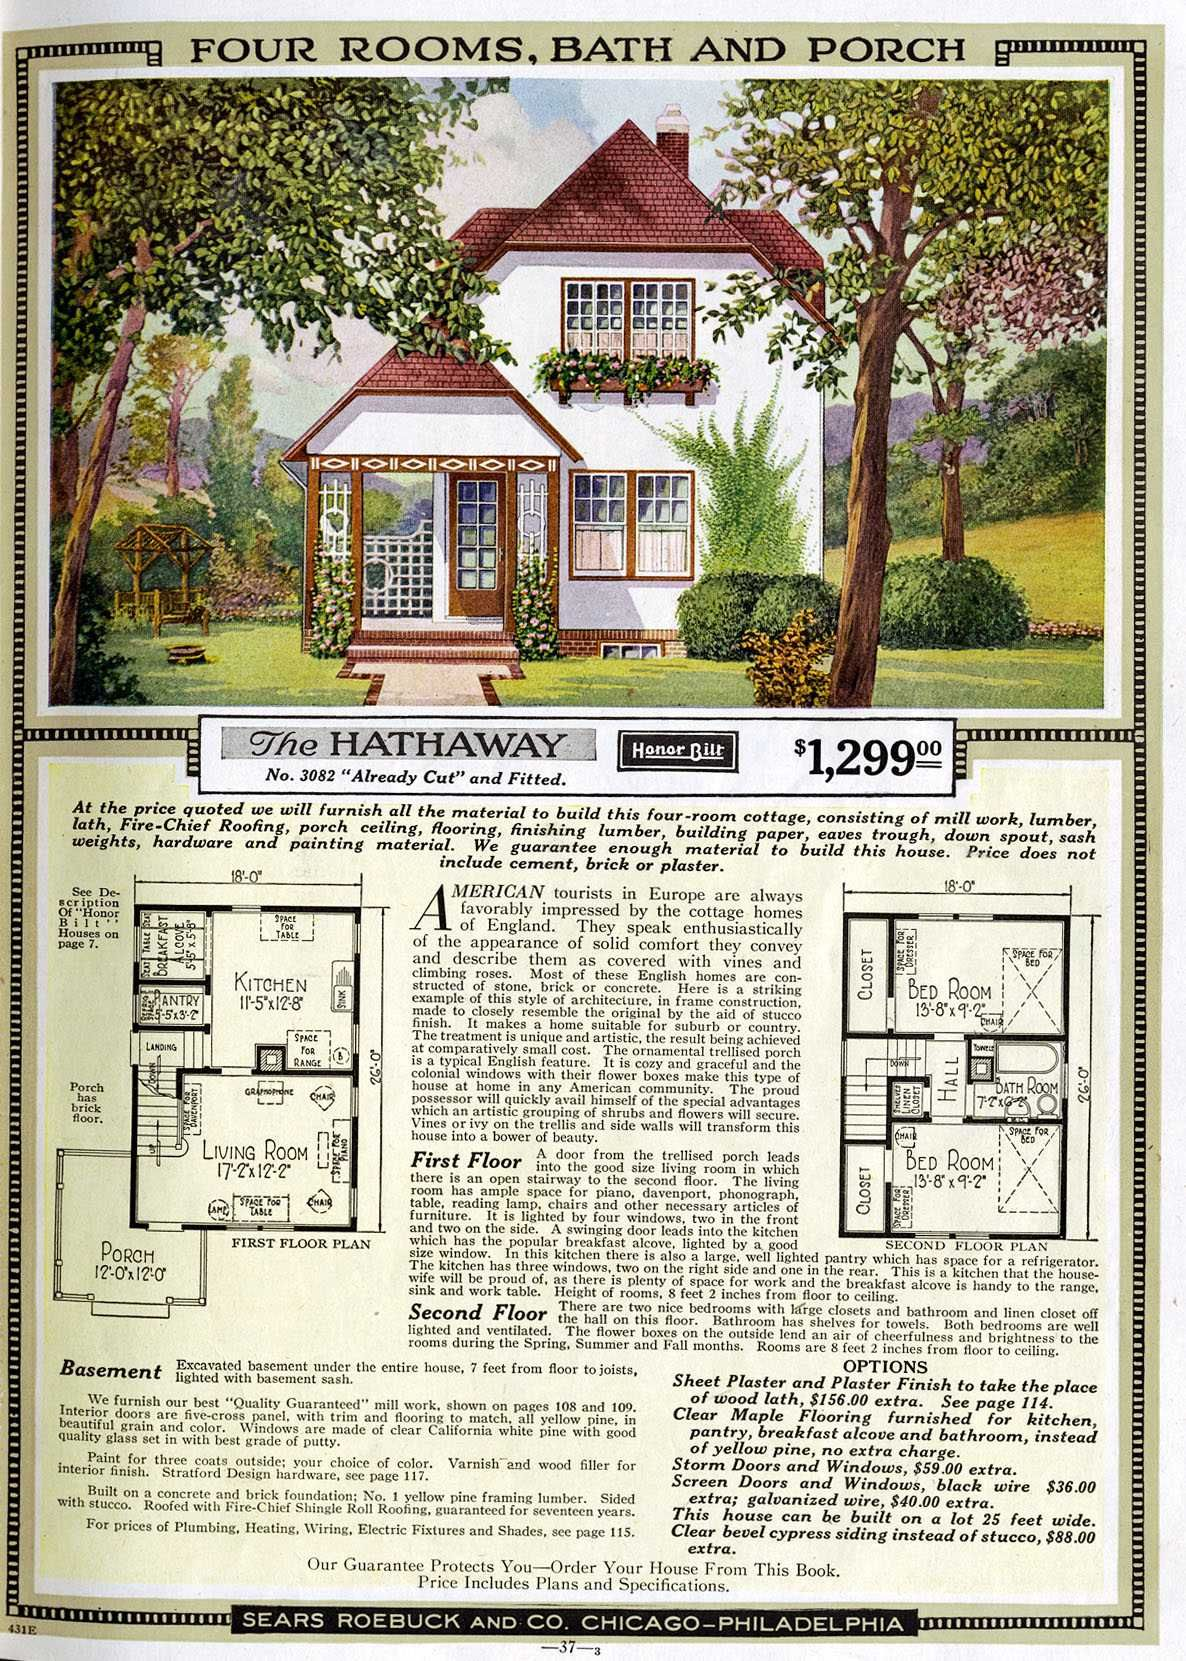 ^ 1000+ images about Sears, oebuck & o. on Pinterest